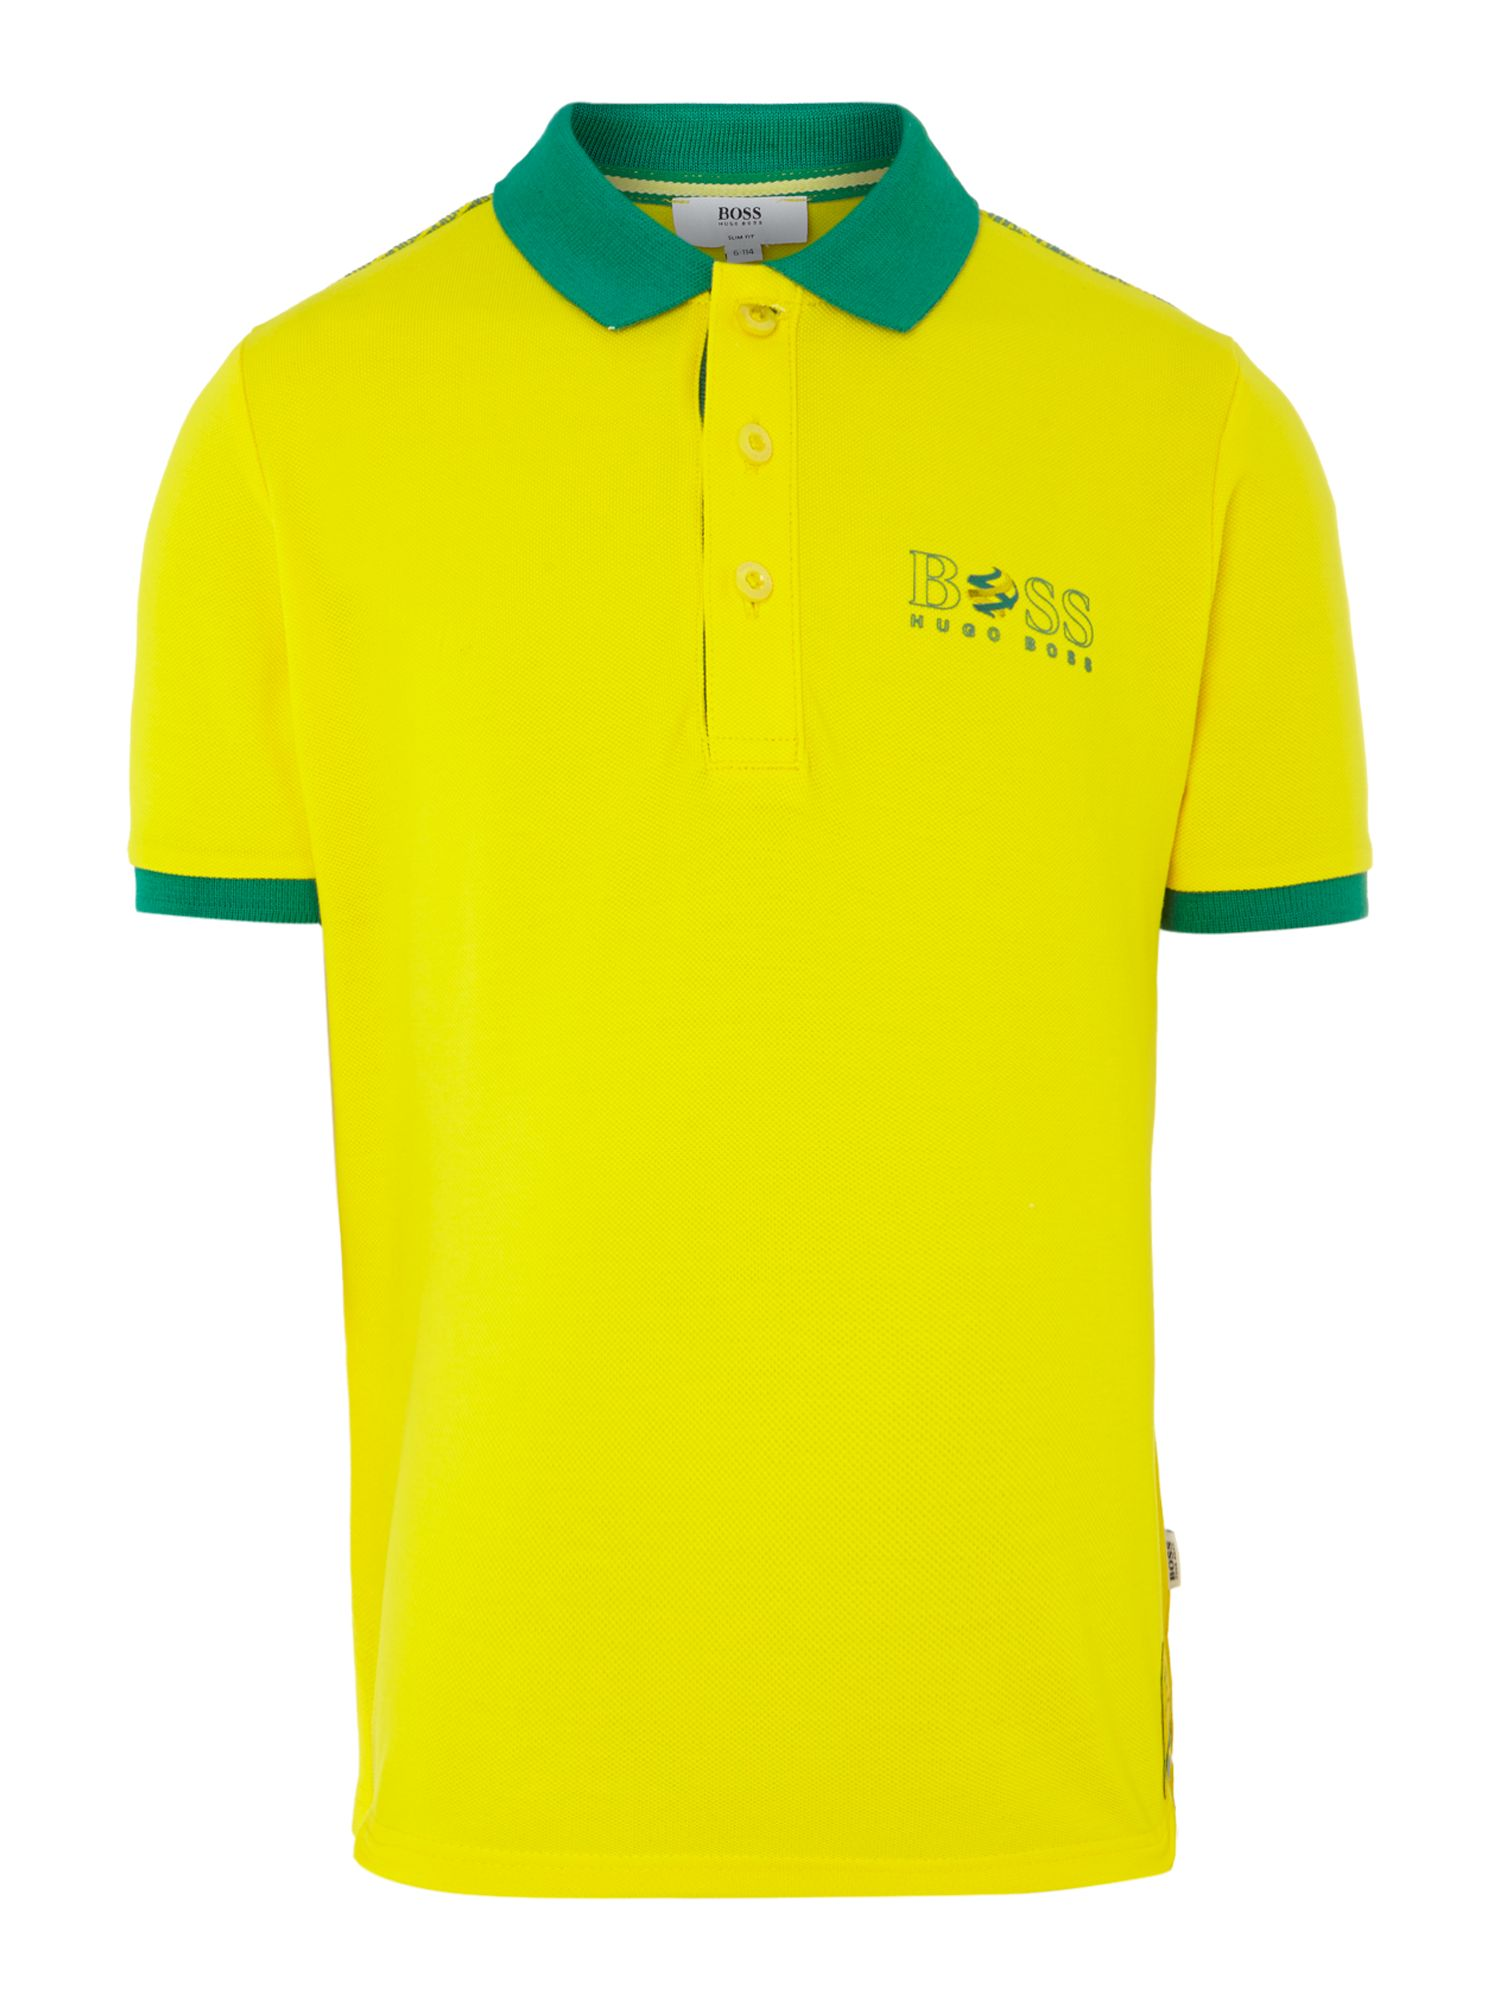 Kids Brazil football colours polo shirt